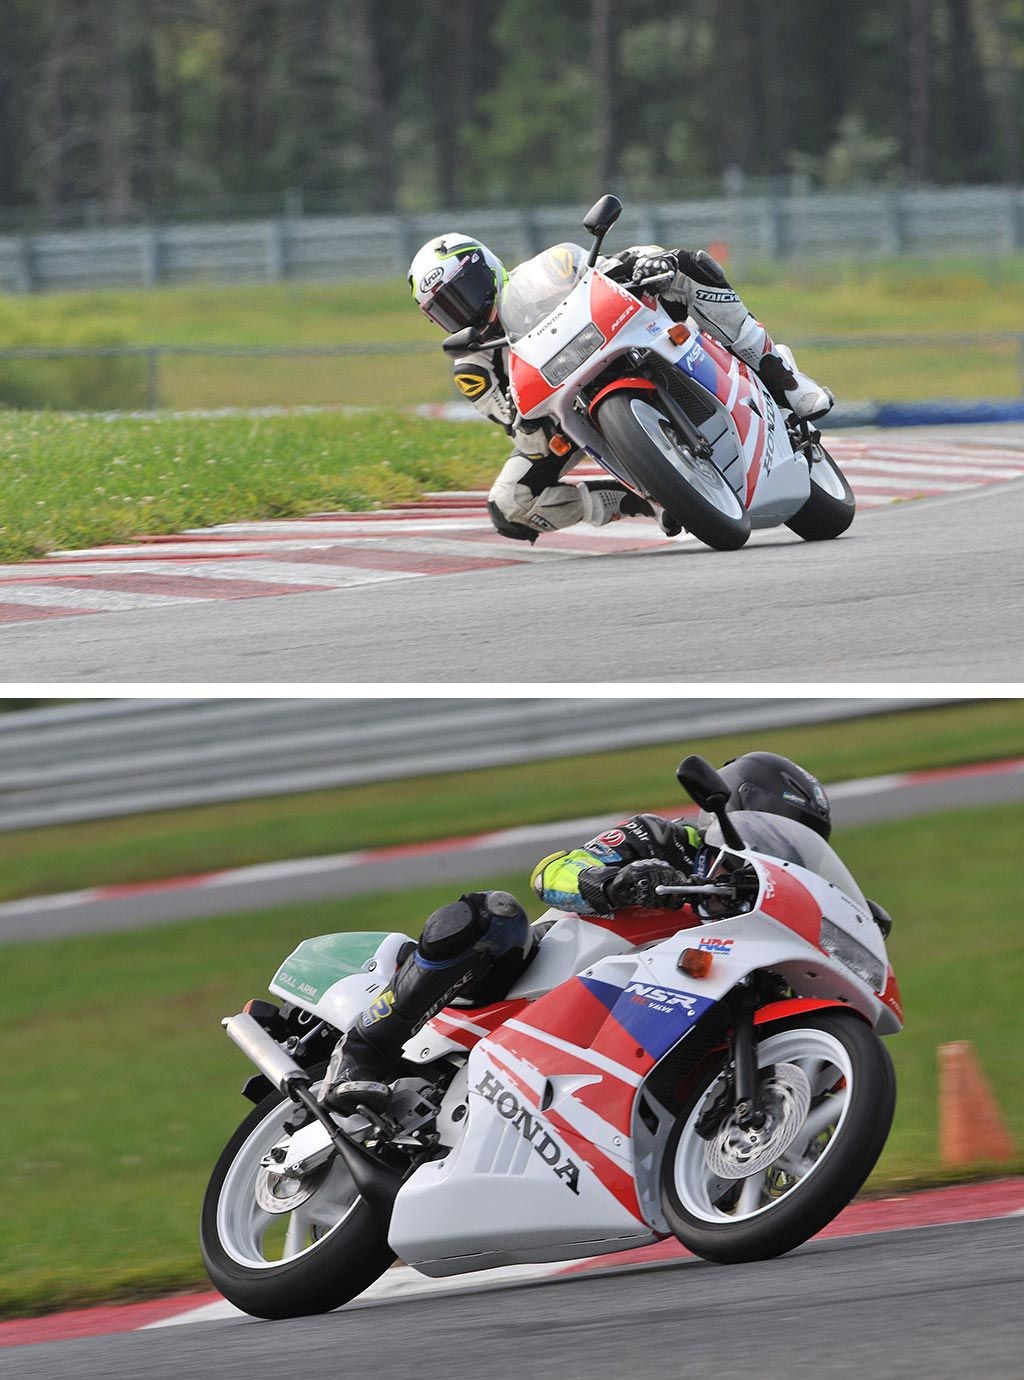 Two-Stroke 250cc Sportbike Comparison Motorcycle Review